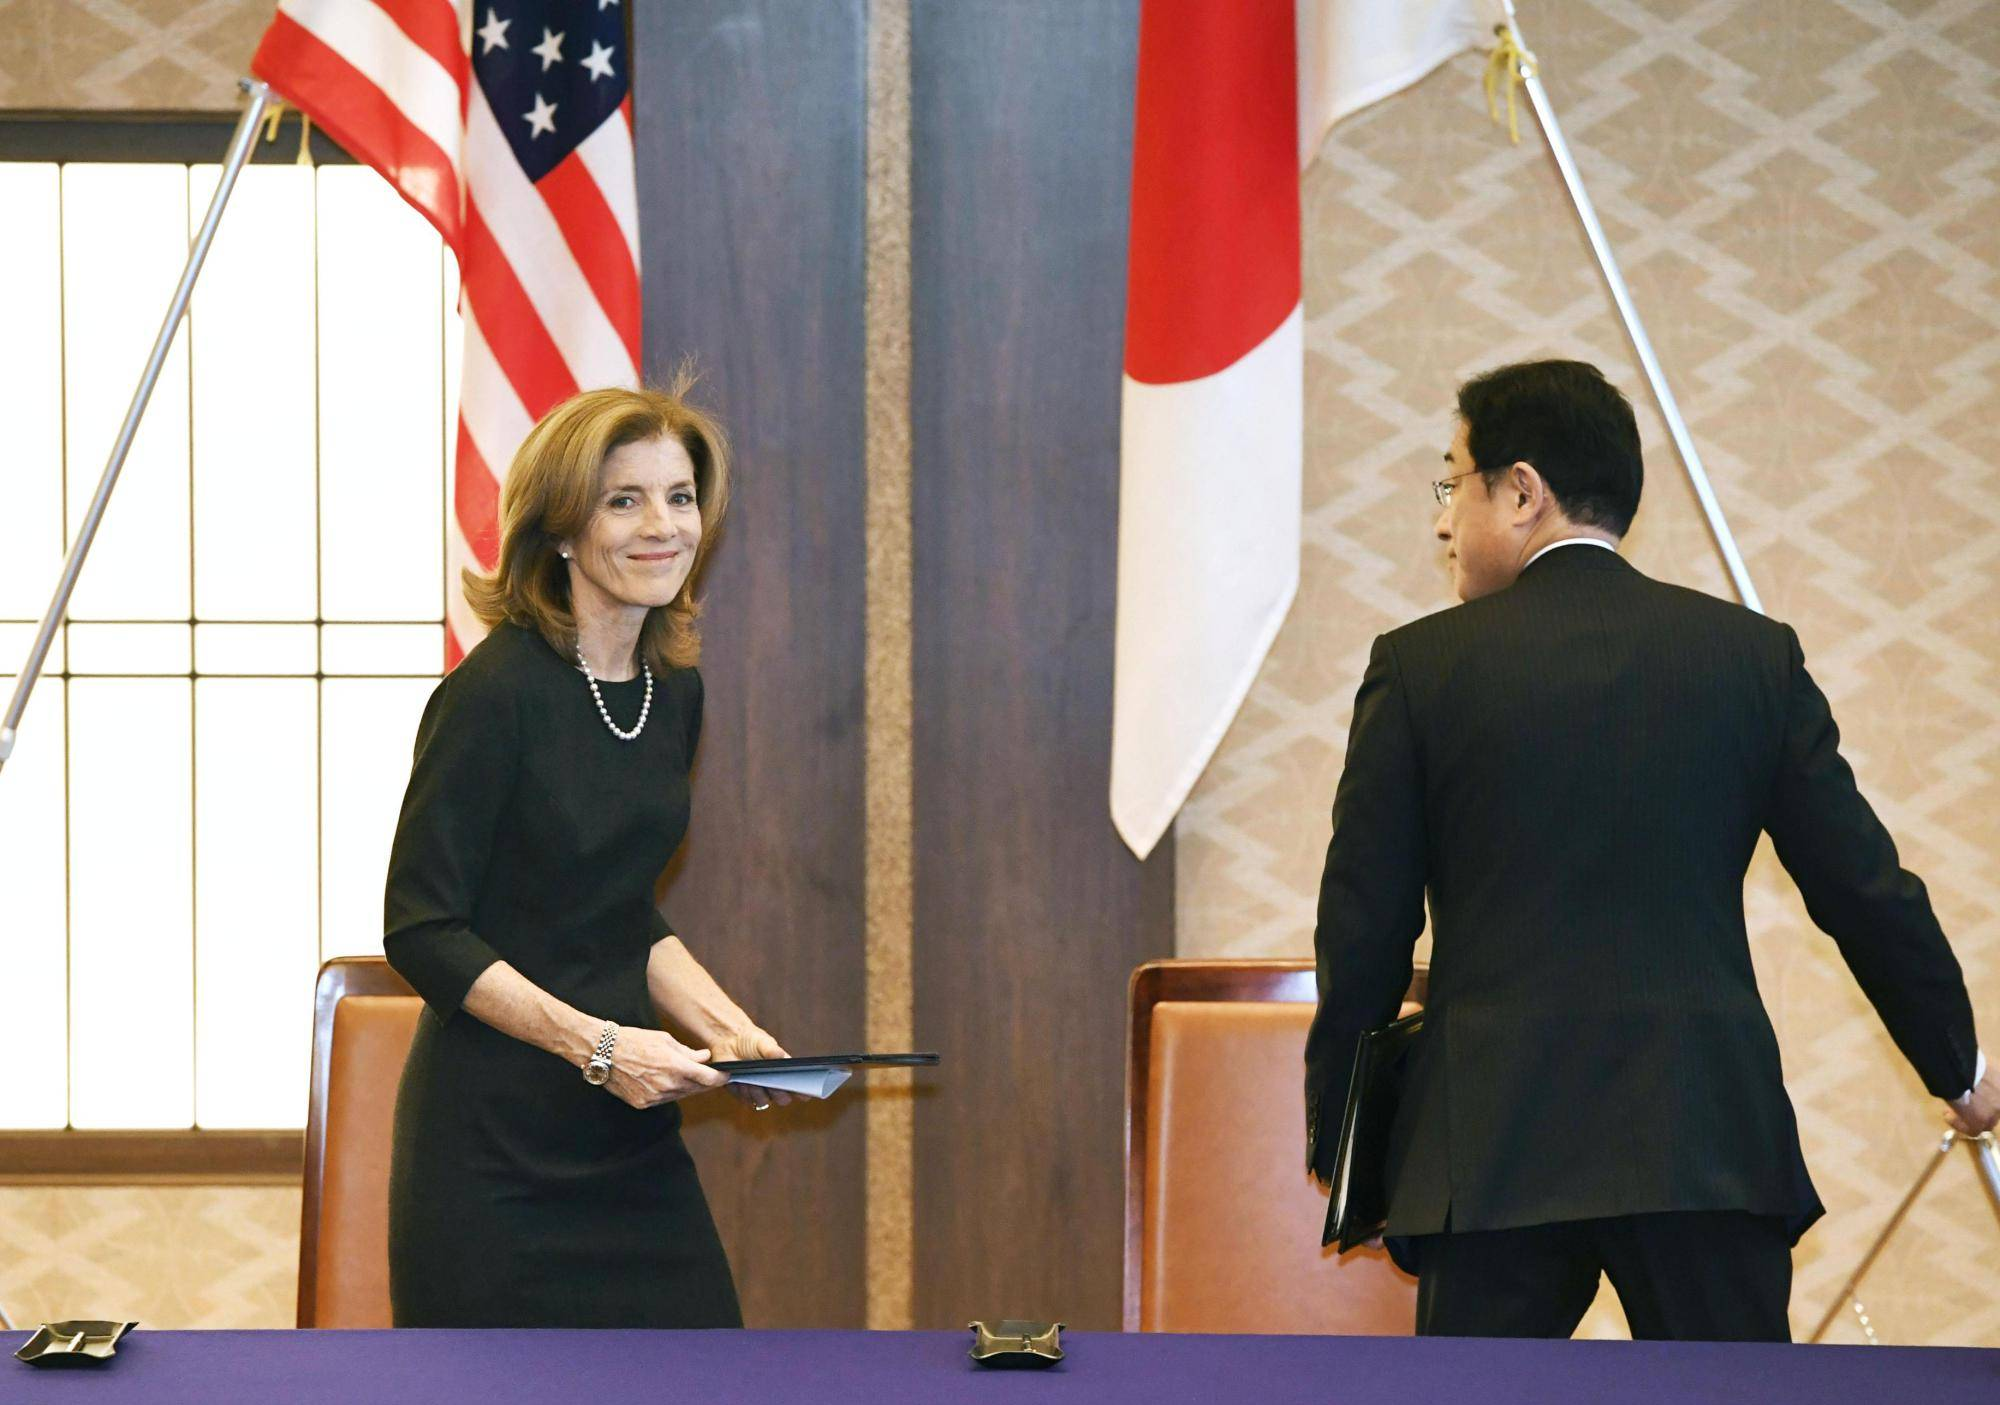 U.S. Ambassador Caroline Kennedy leaves a news conference in Tokyo with Foreign Minister Fumio Kishida on Monday after signing a deal to clarify the definition of civilian base workers protected under the Status of Forces Agreement. | KYODO